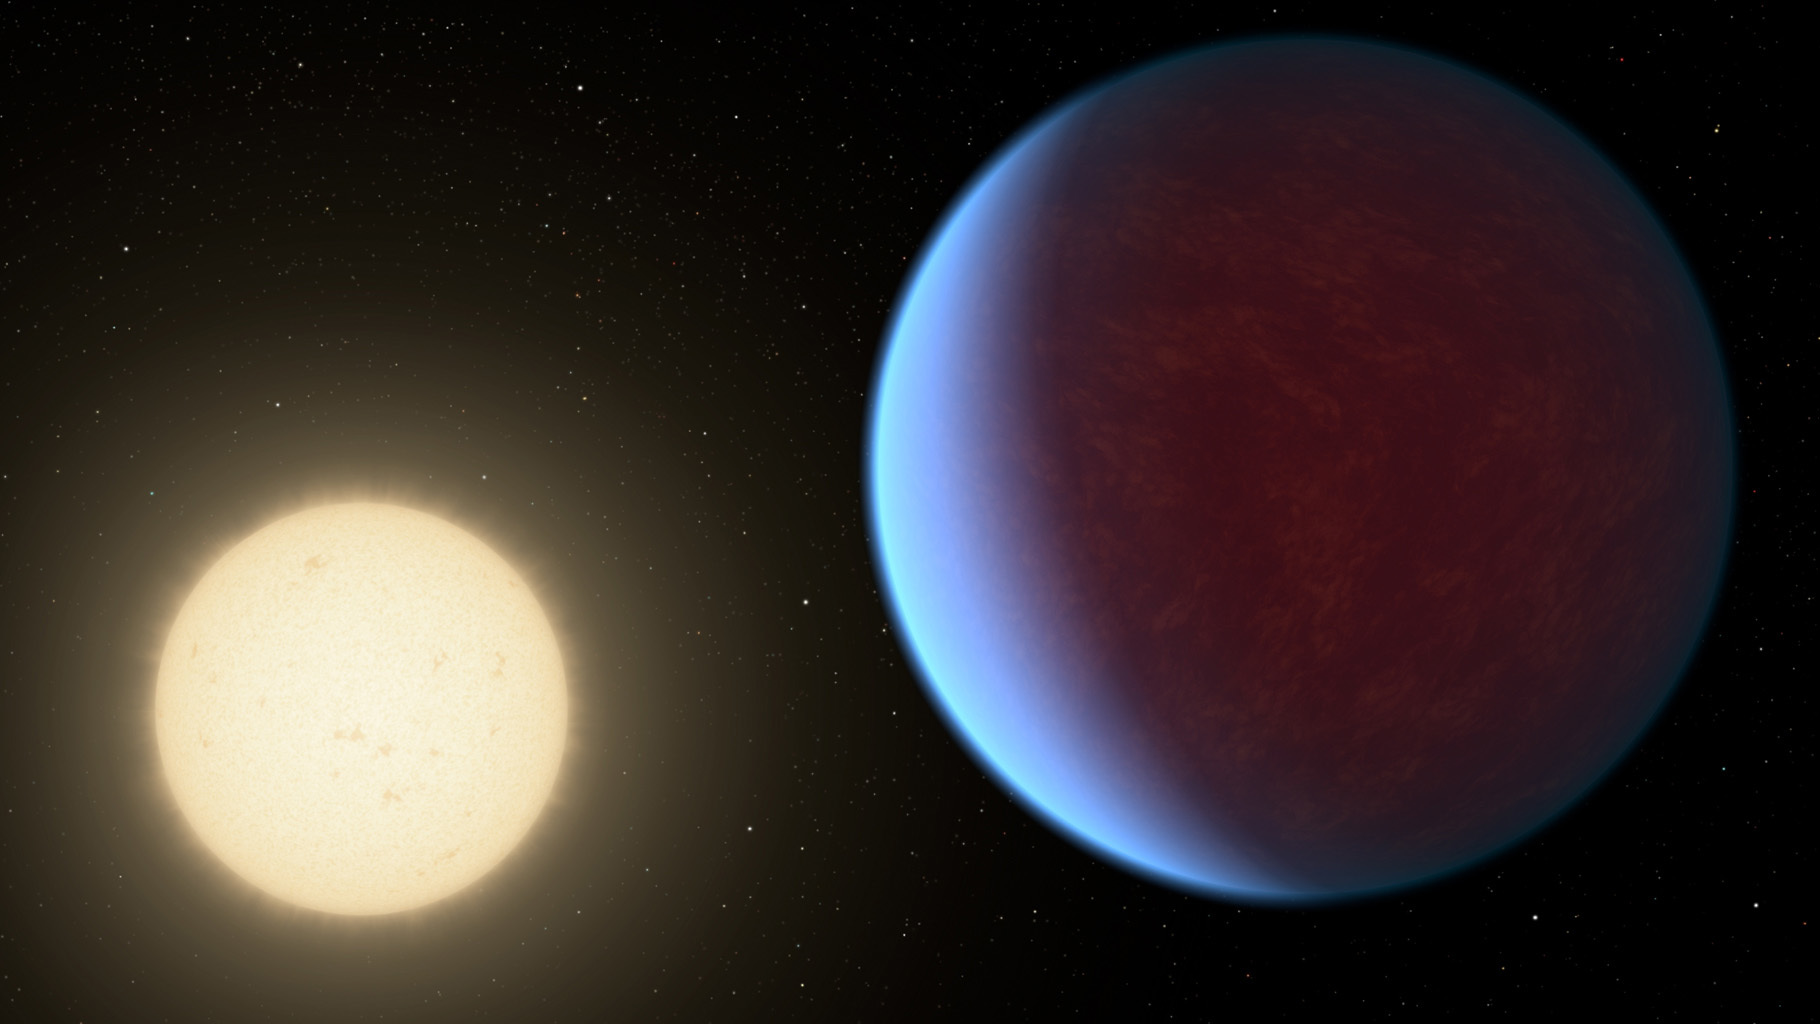 Illustration of a hazy blue planet around a yellow star.